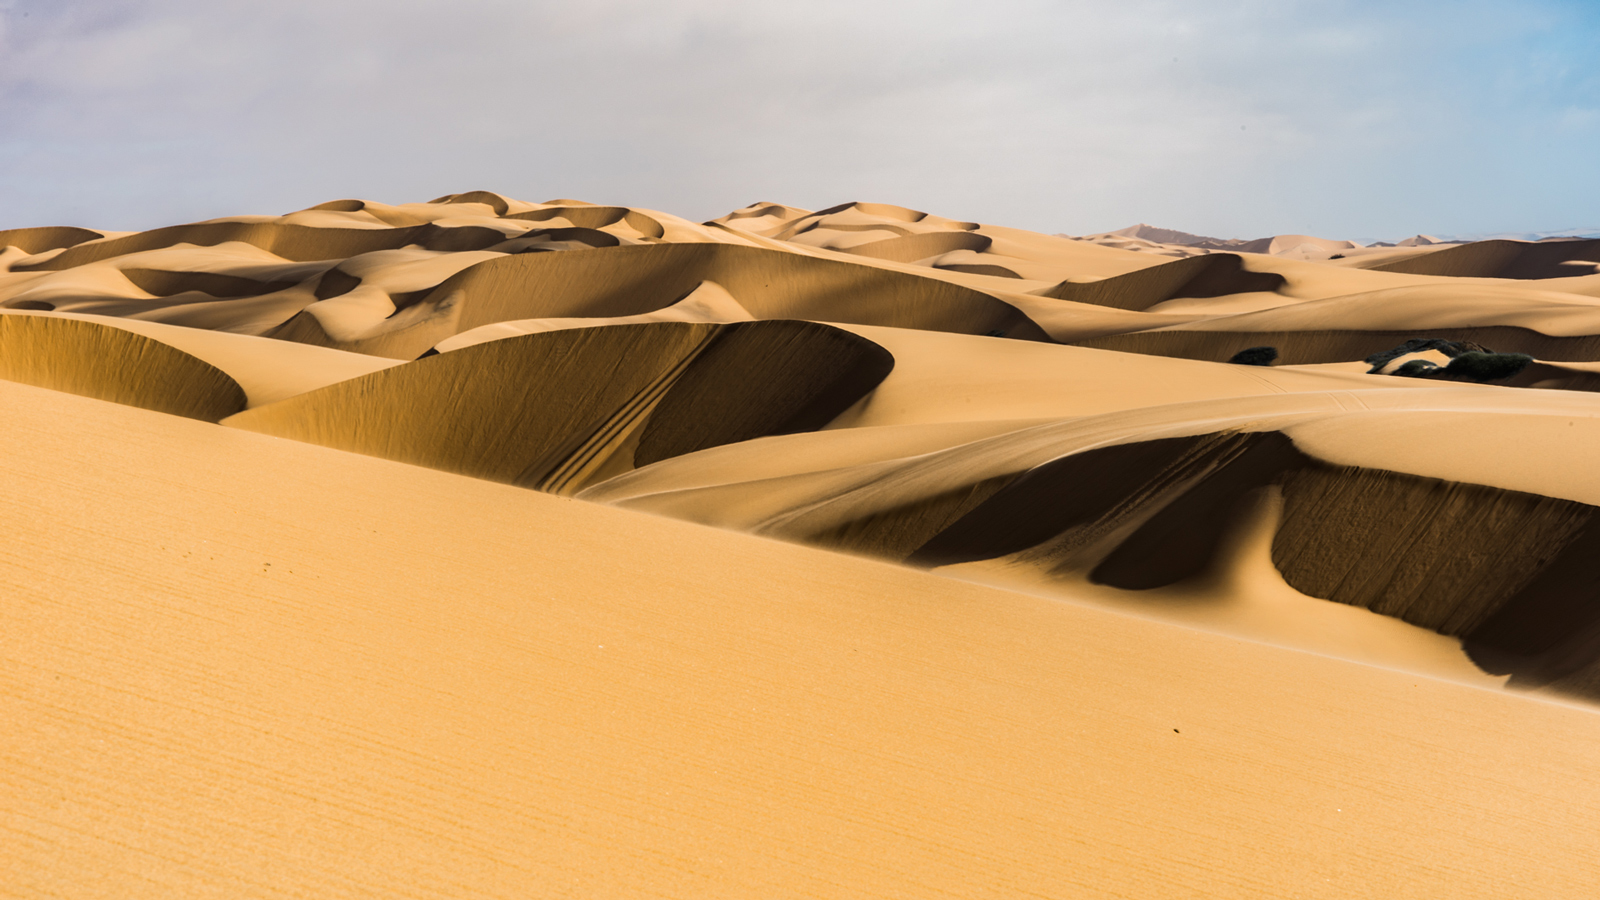 The shifting sands of the Skeleton Coast, Namibia ©Andrea Galli